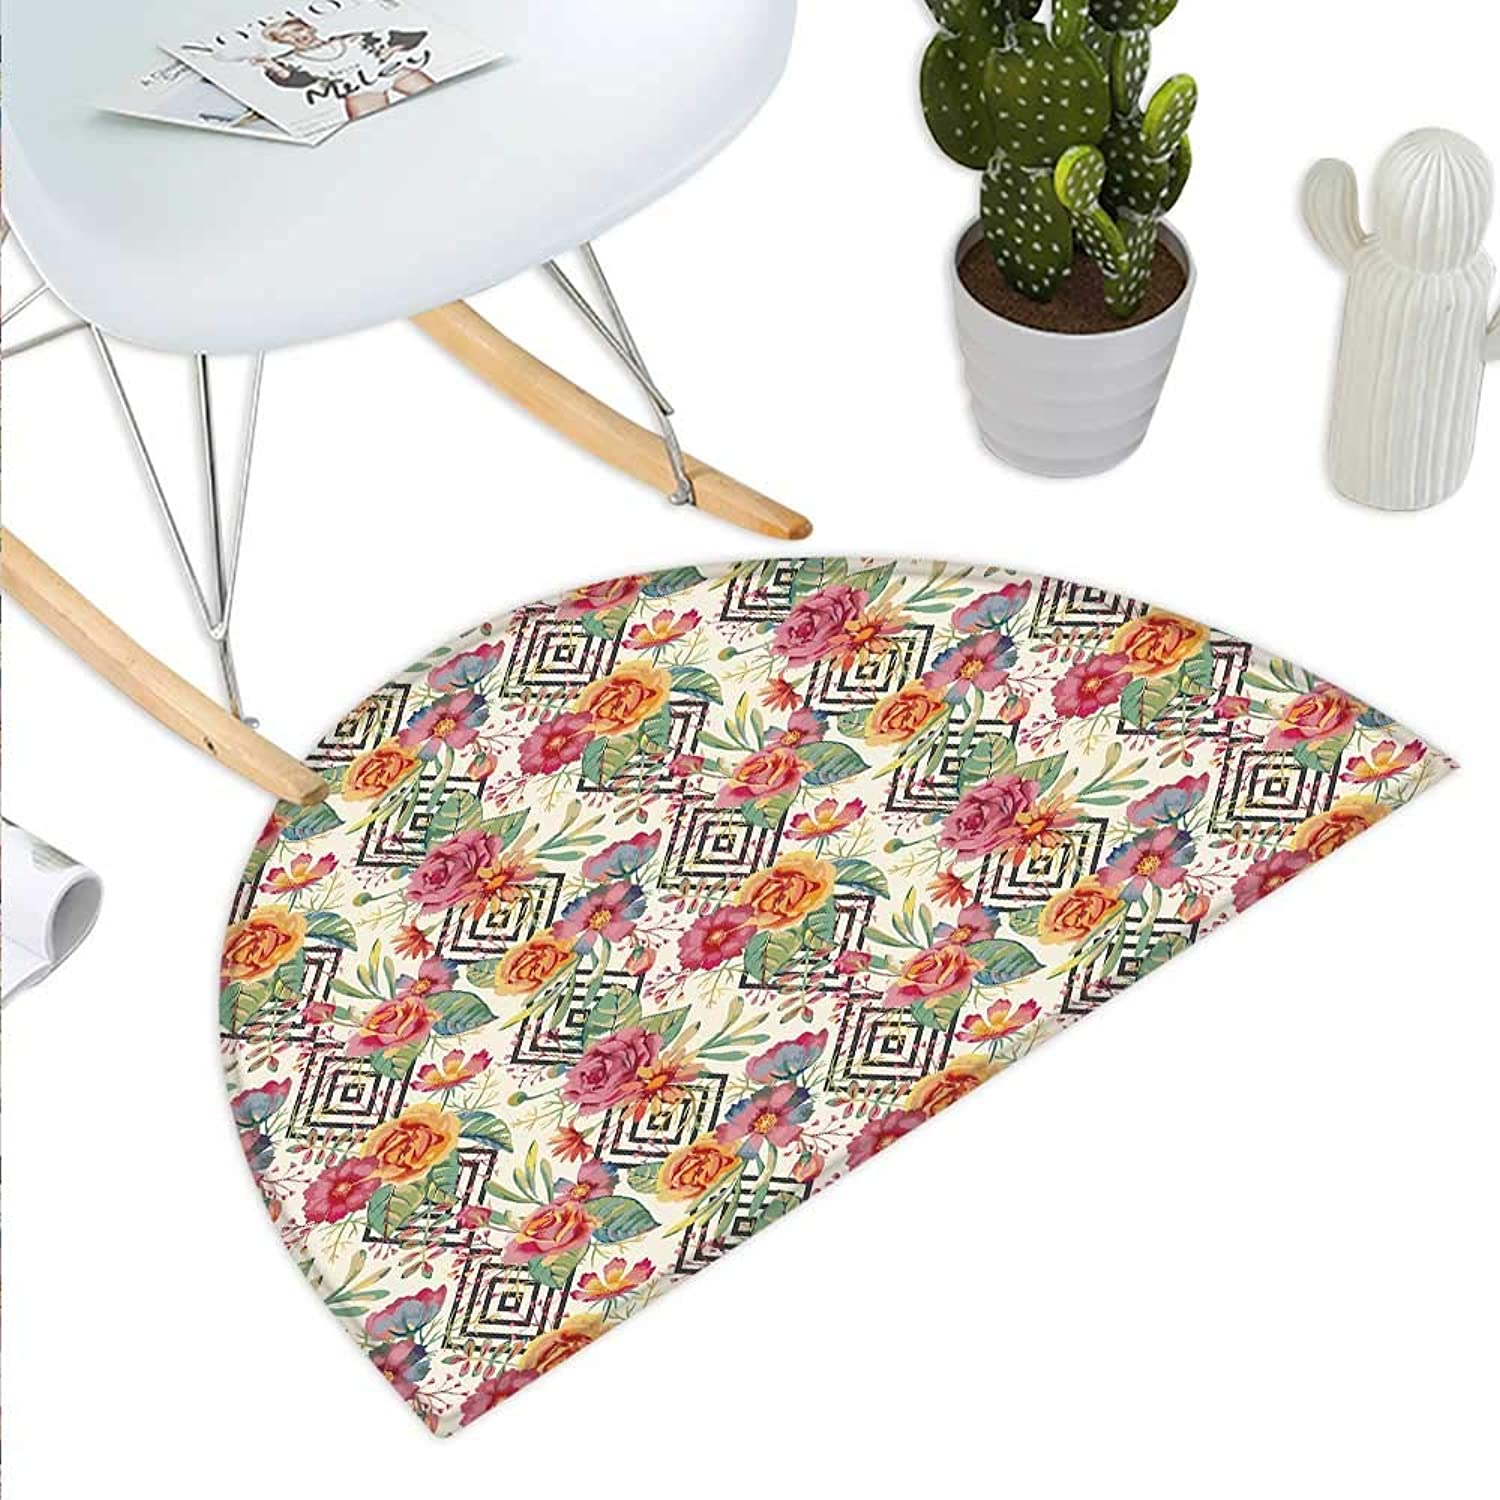 Watercolor Semicircle Doormat Diamond Shaped Rectangles Patterned Background with Hand Drawn Plant Arrangement Halfmoon doormats H 43.3  xD 64.9  Multicolor